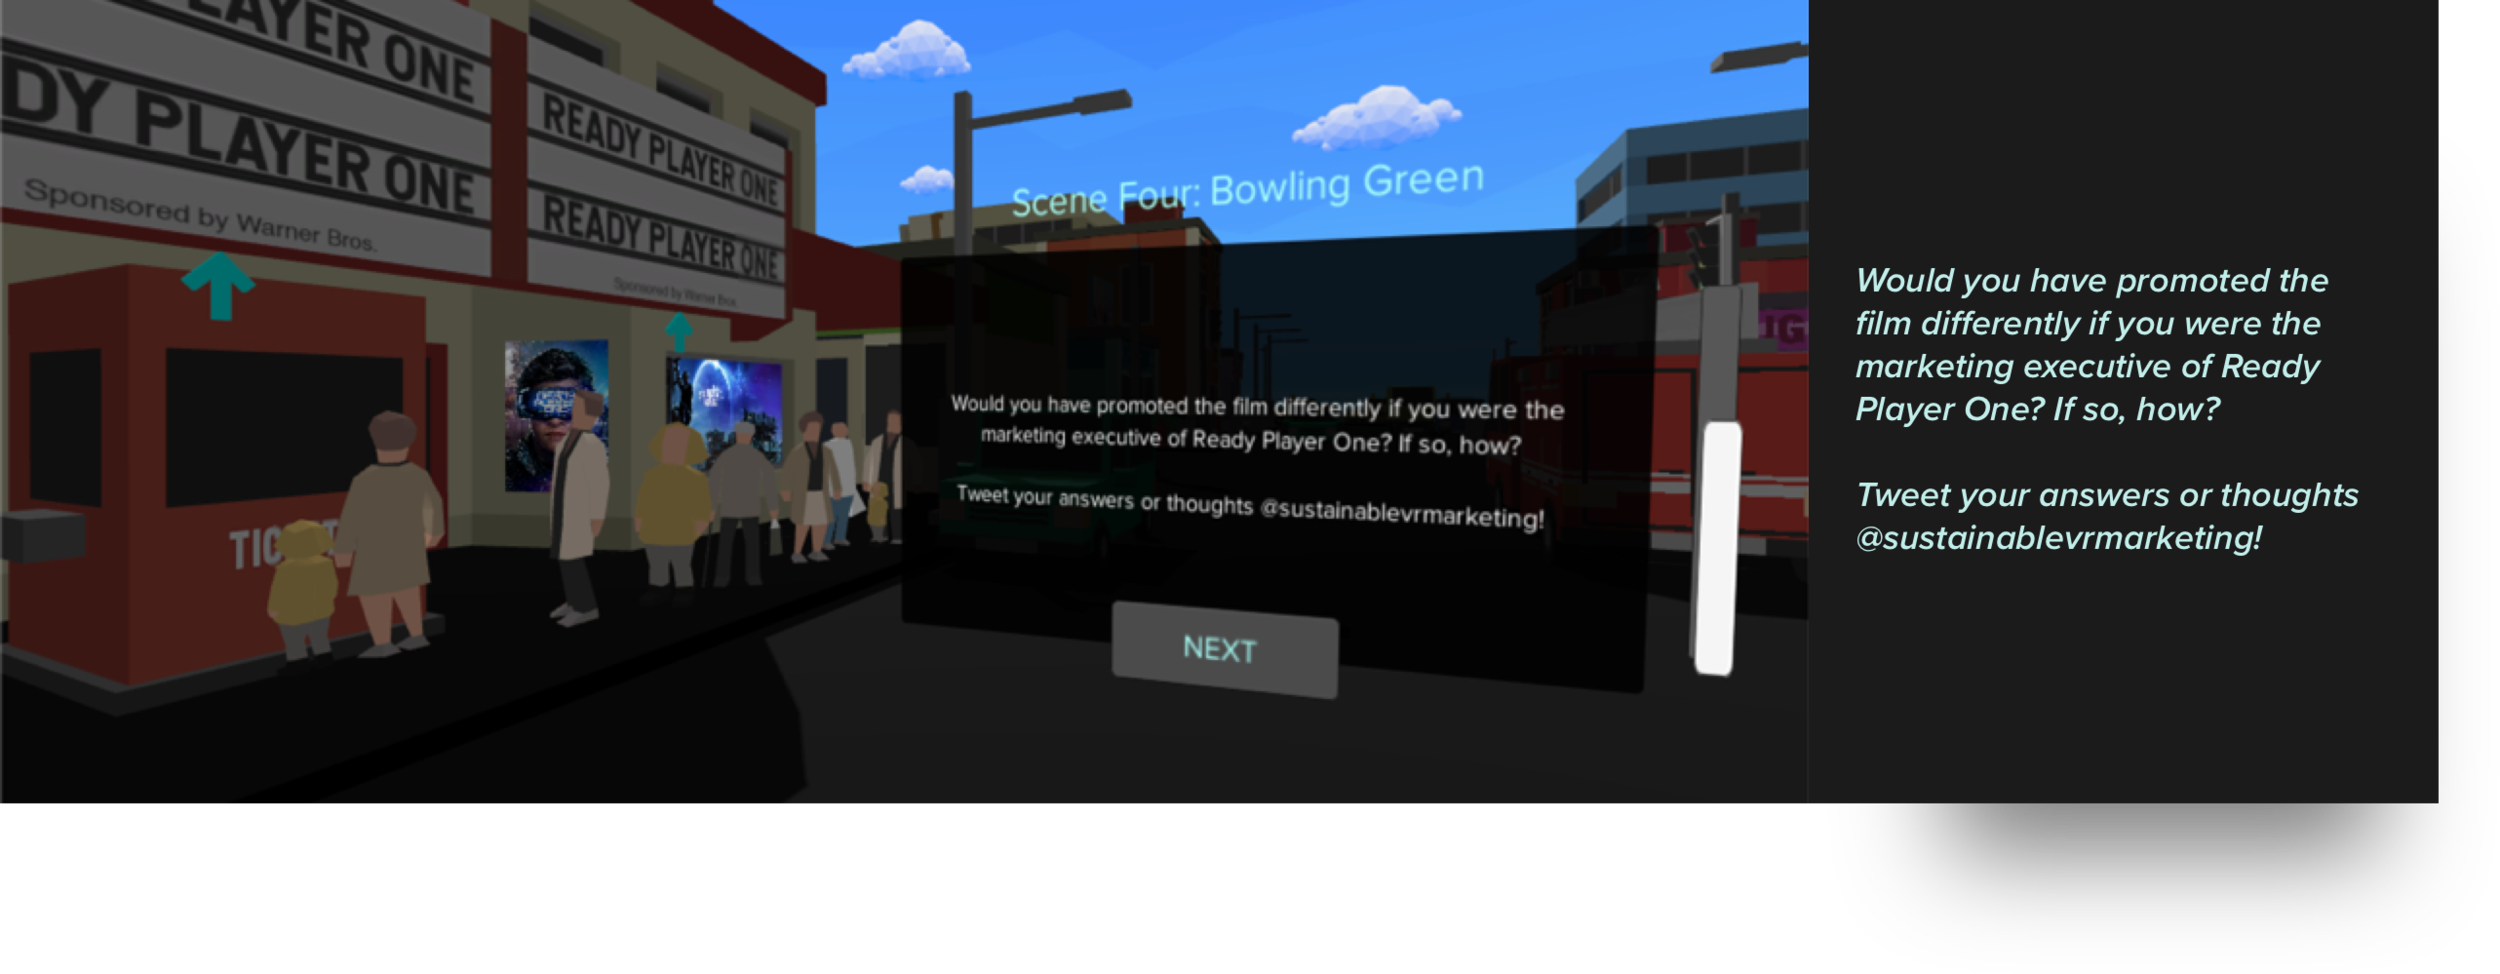 Bowling Green Second Scene Card #2.png